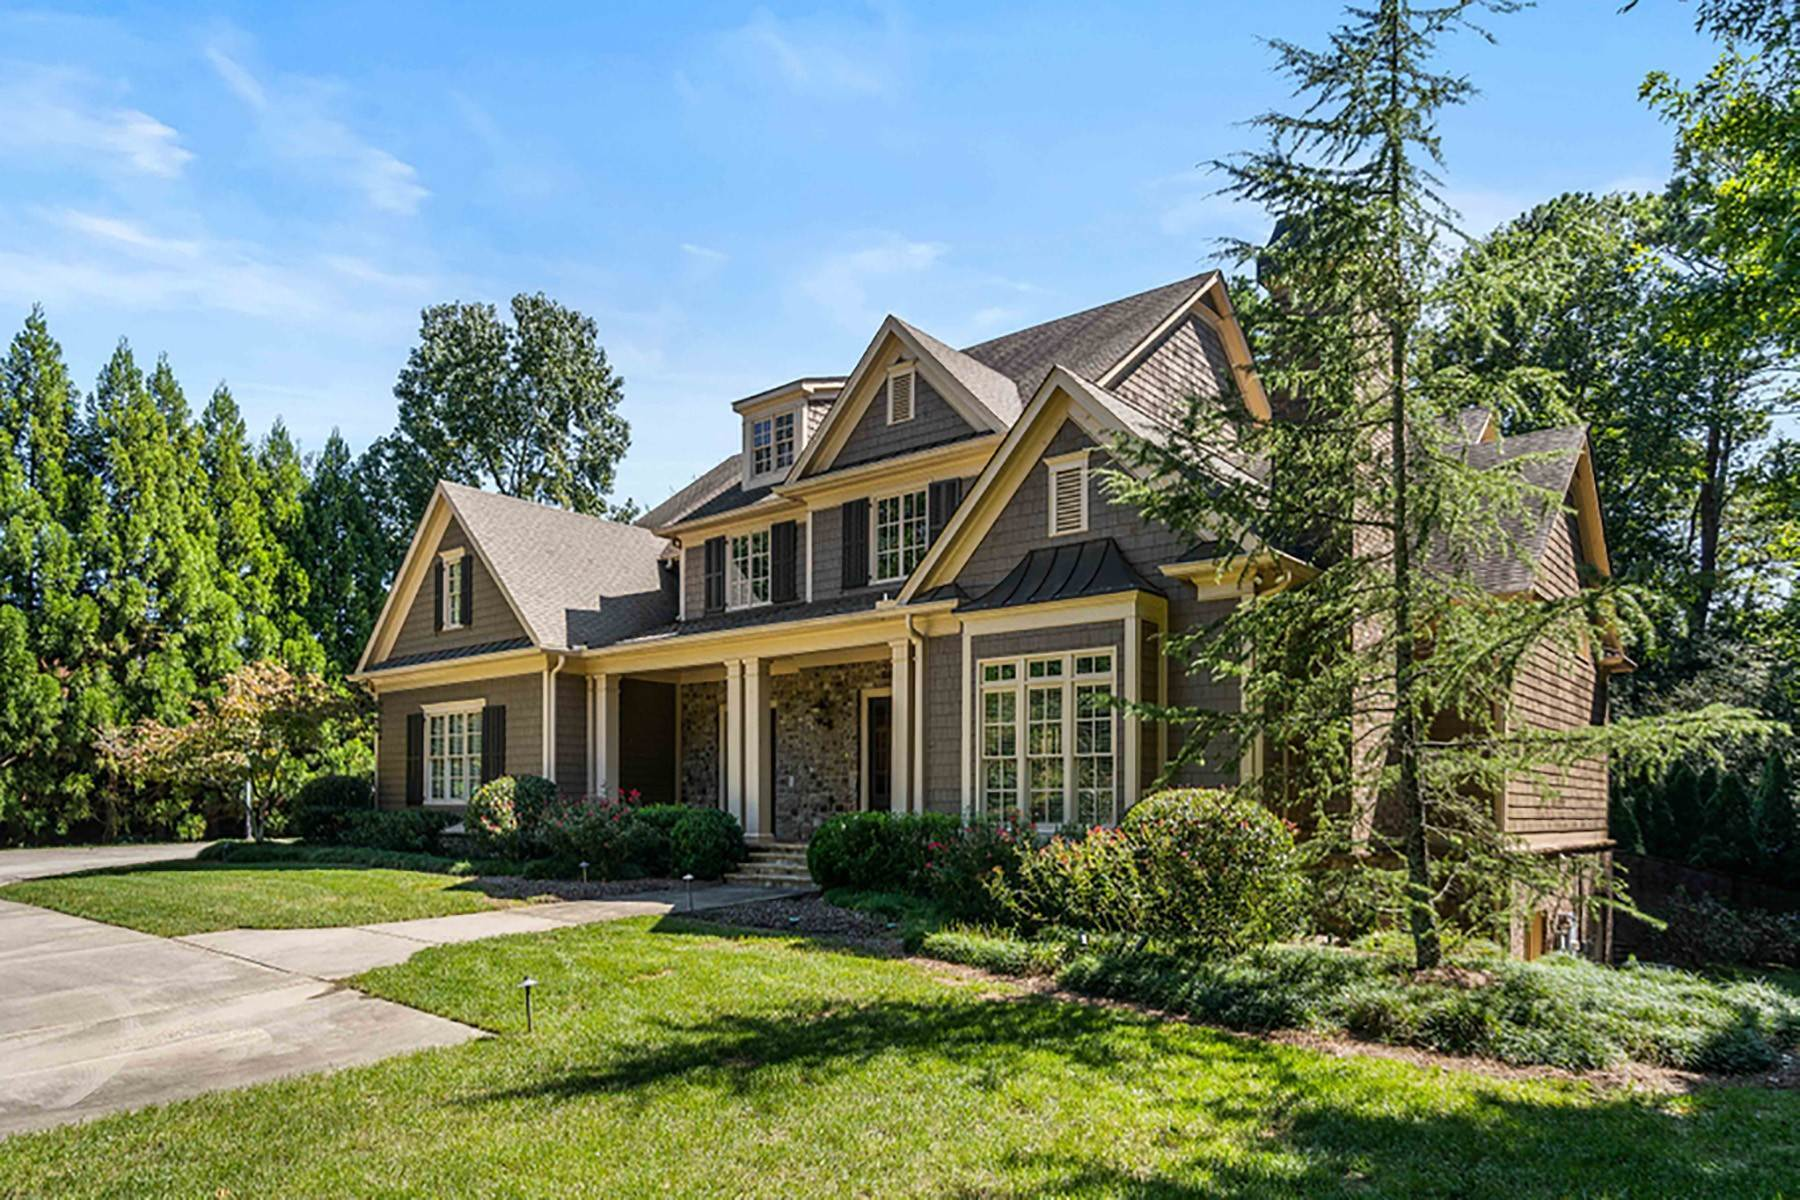 Single Family Homes for Sale at Private Estate on an Acre in Chastain Area 4968 Long Island Drive NW Atlanta, Georgia 30327 United States